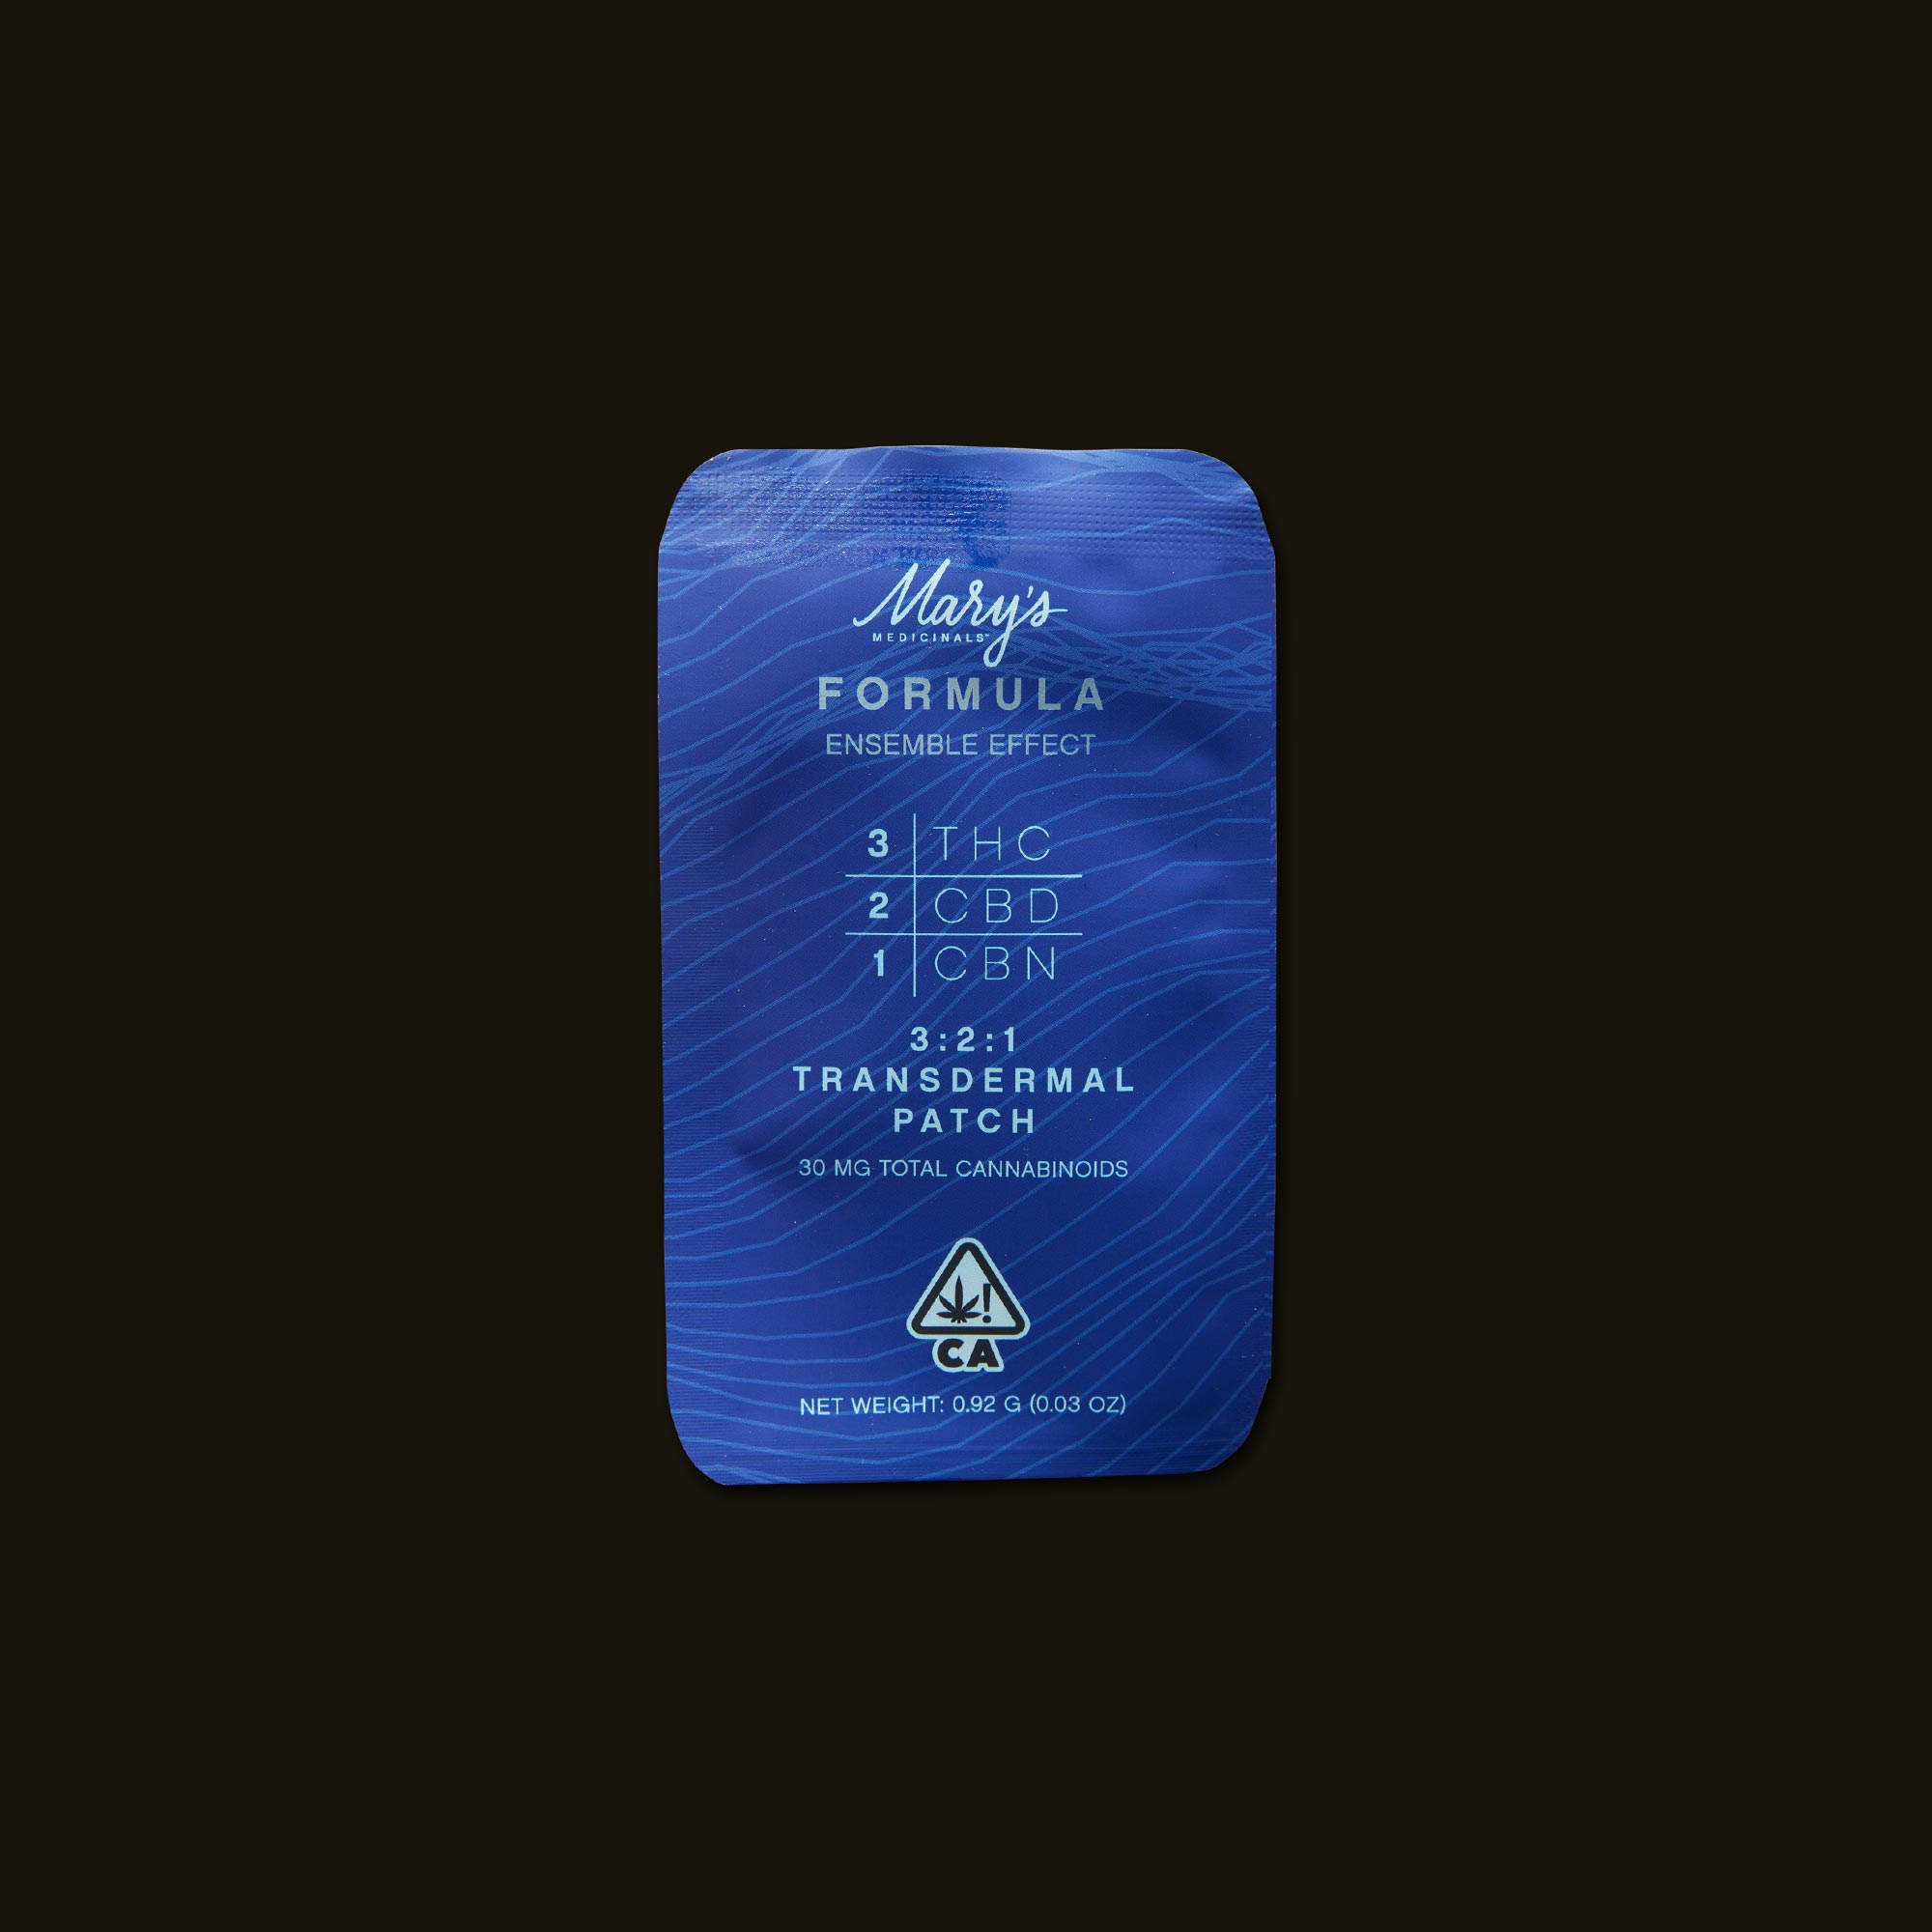 Mary's Medicinals Formula Patch Front Packaging